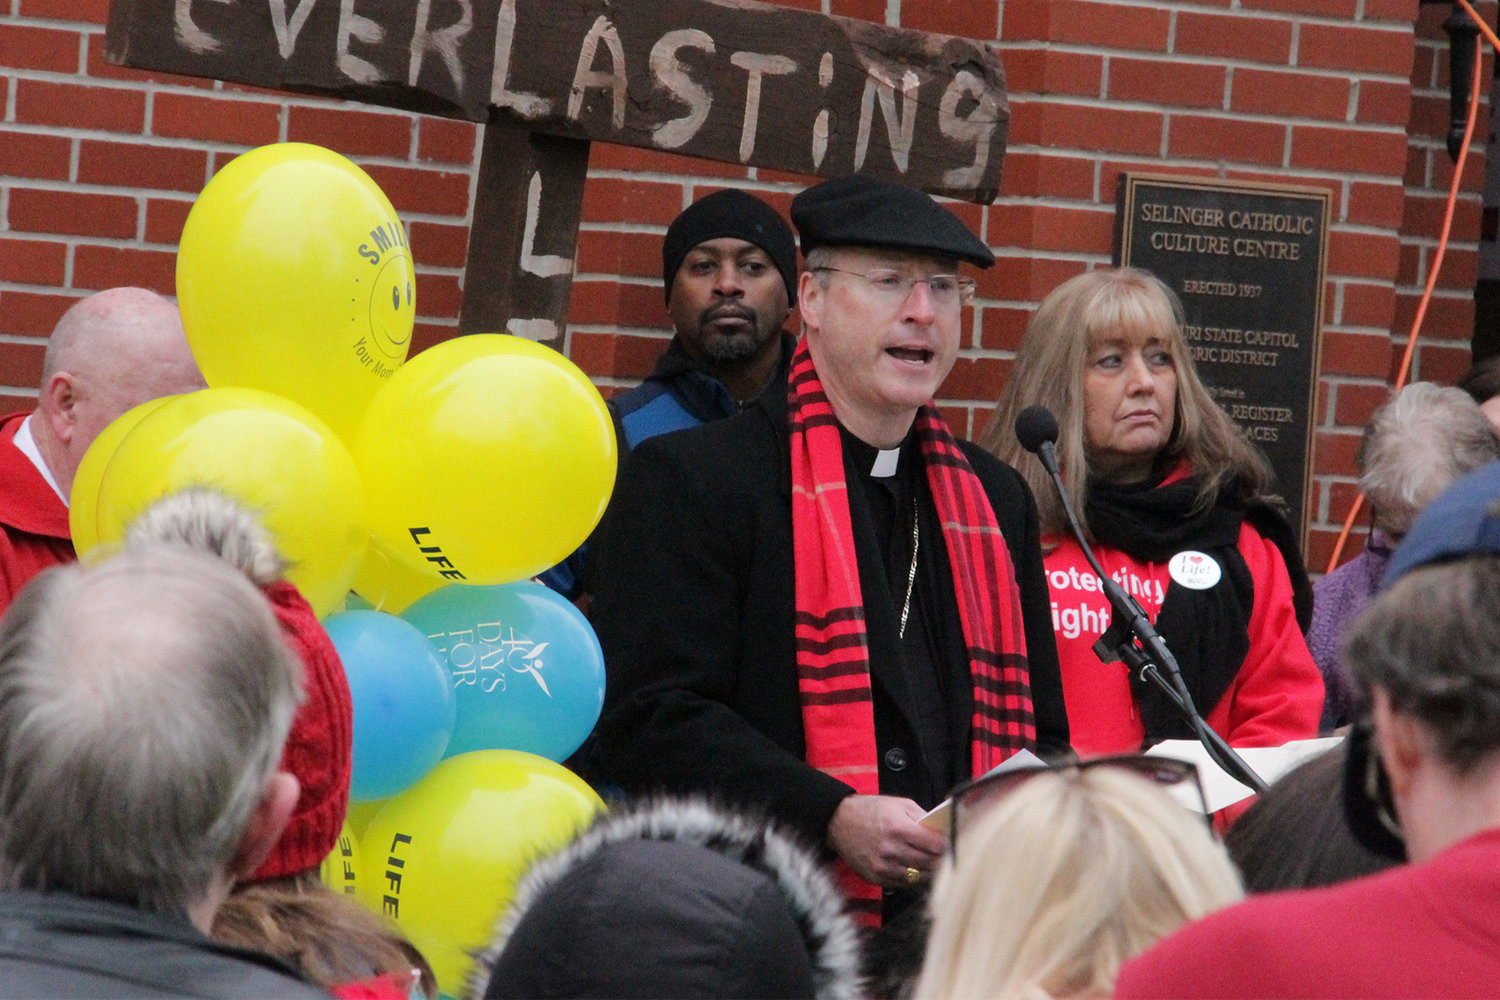 Bishop W. Shawn McKnight speaks at a pre-march rally outside the Selinger Centre at St. Peter Church during the Midwest March for Life, Feb. 1 in Jefferson City.